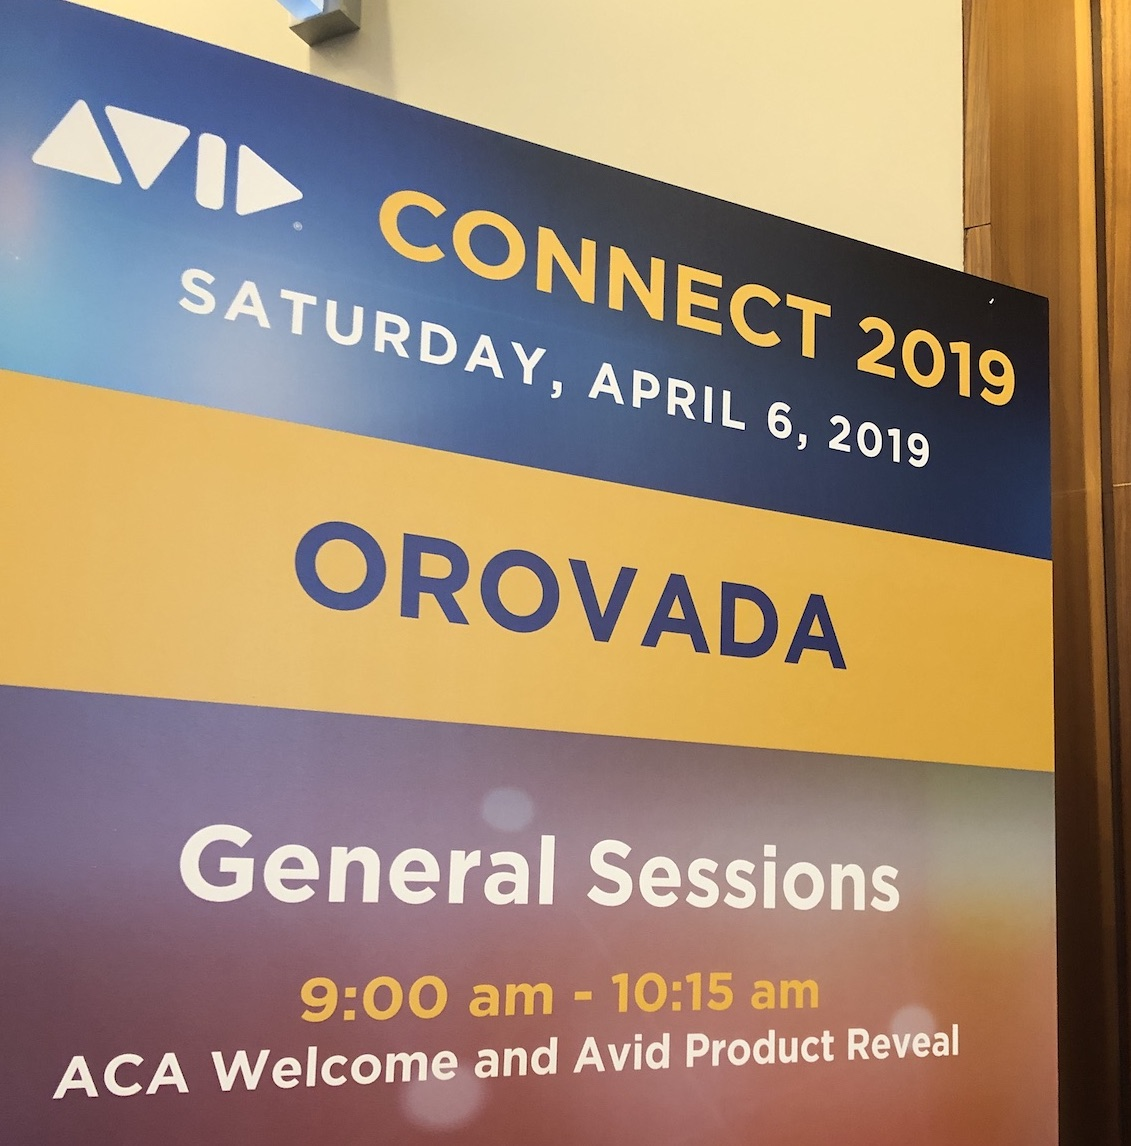 Avid Connect Press Conference and the Avid Product Reveal 14